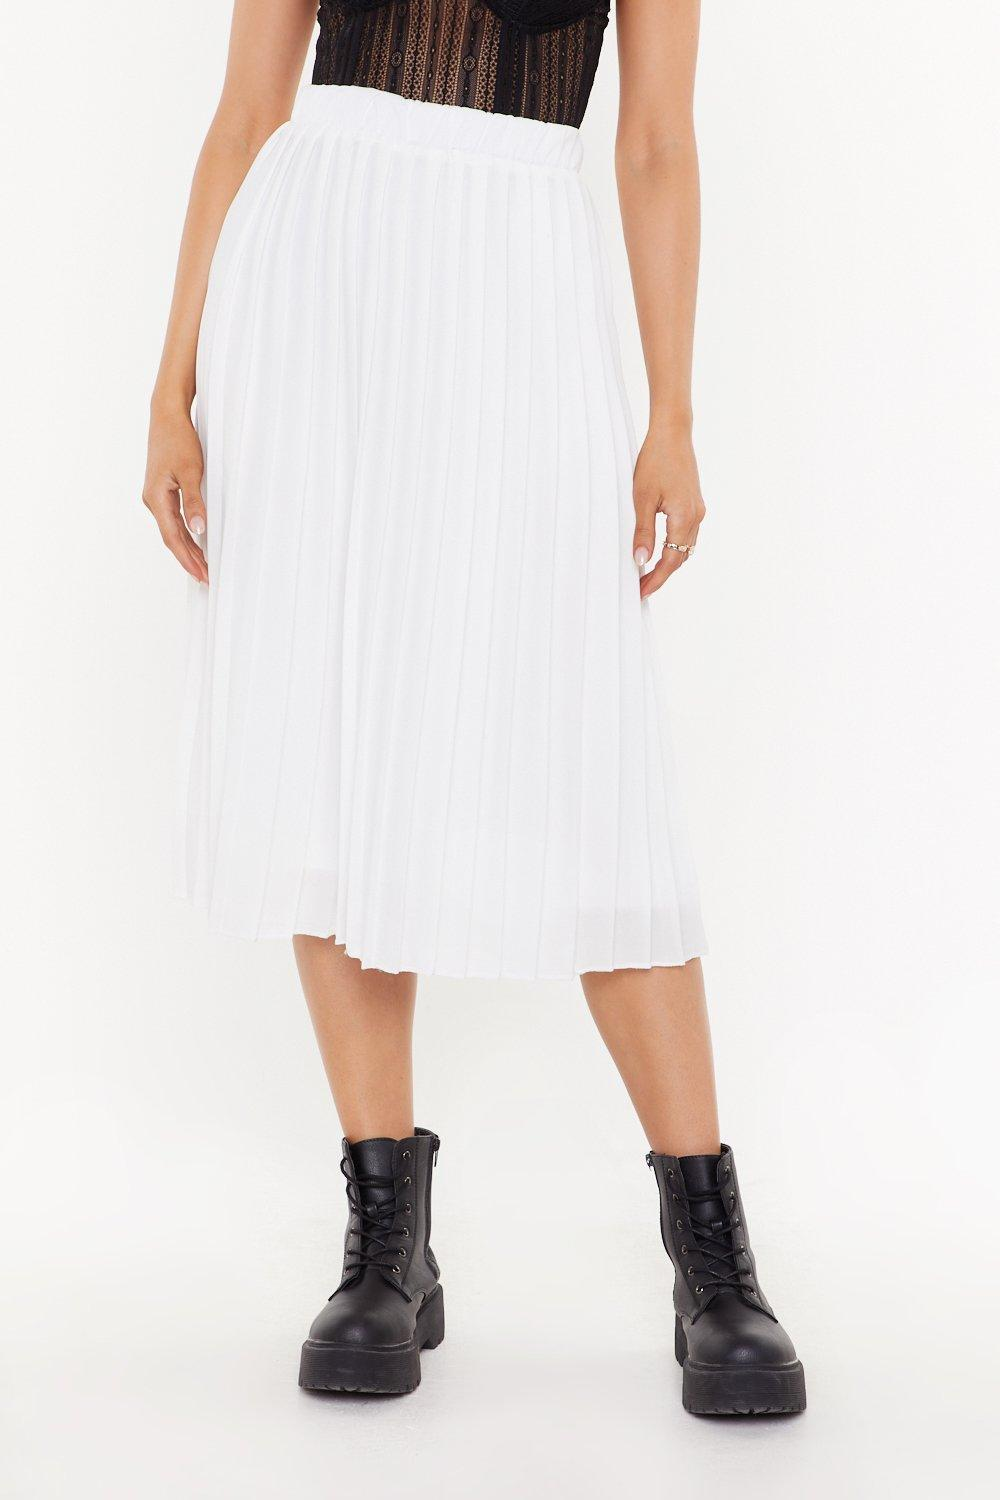 0e30ef527f56 Pleated Midi Skirt | Shop Clothes at Nasty Gal!